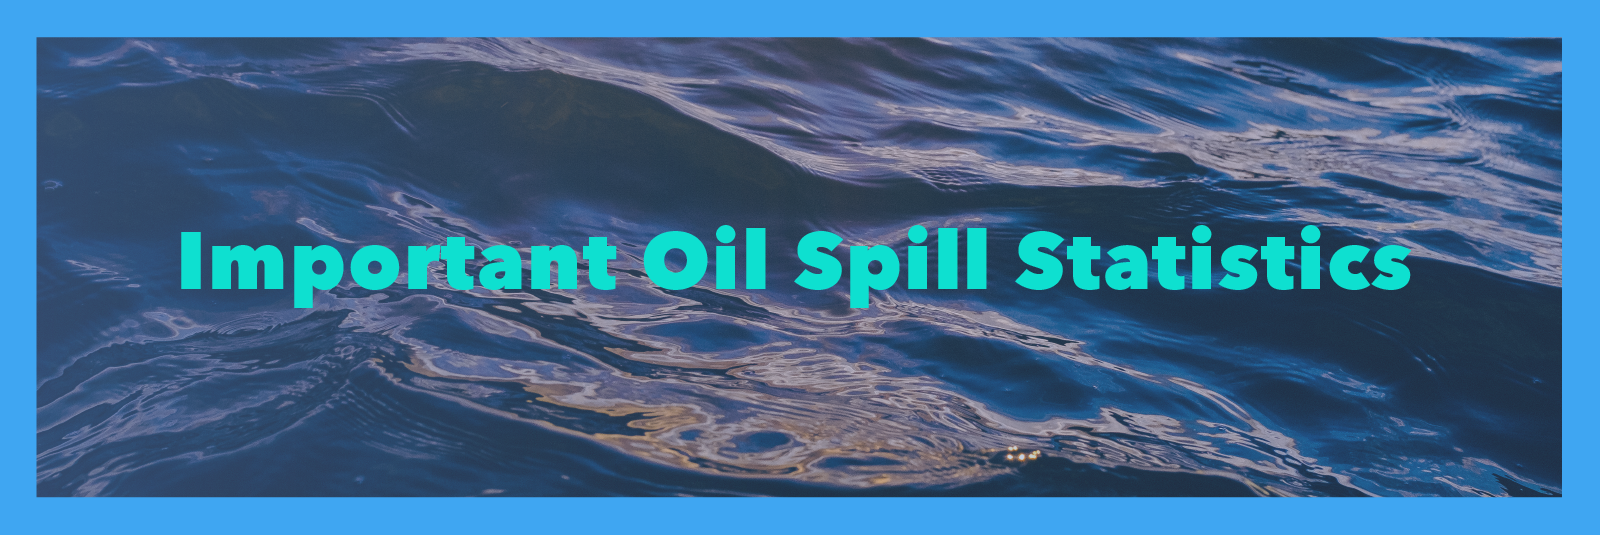 SHPI_Post_OilSpillStatistics_72DPI_Website